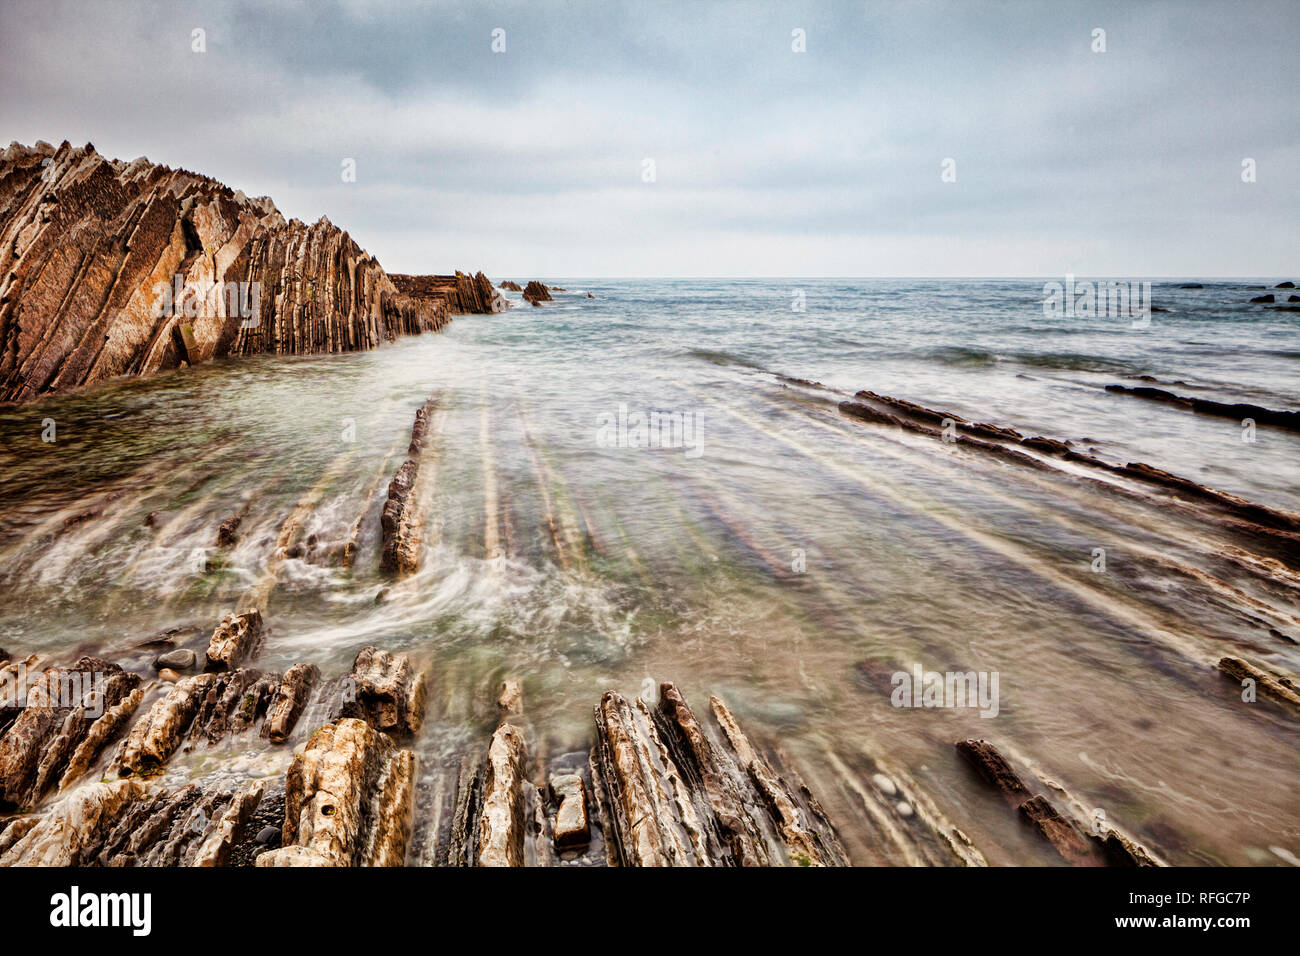 Flysch formation at Itzurun Beach, Basque Country, Spain - Stock Image